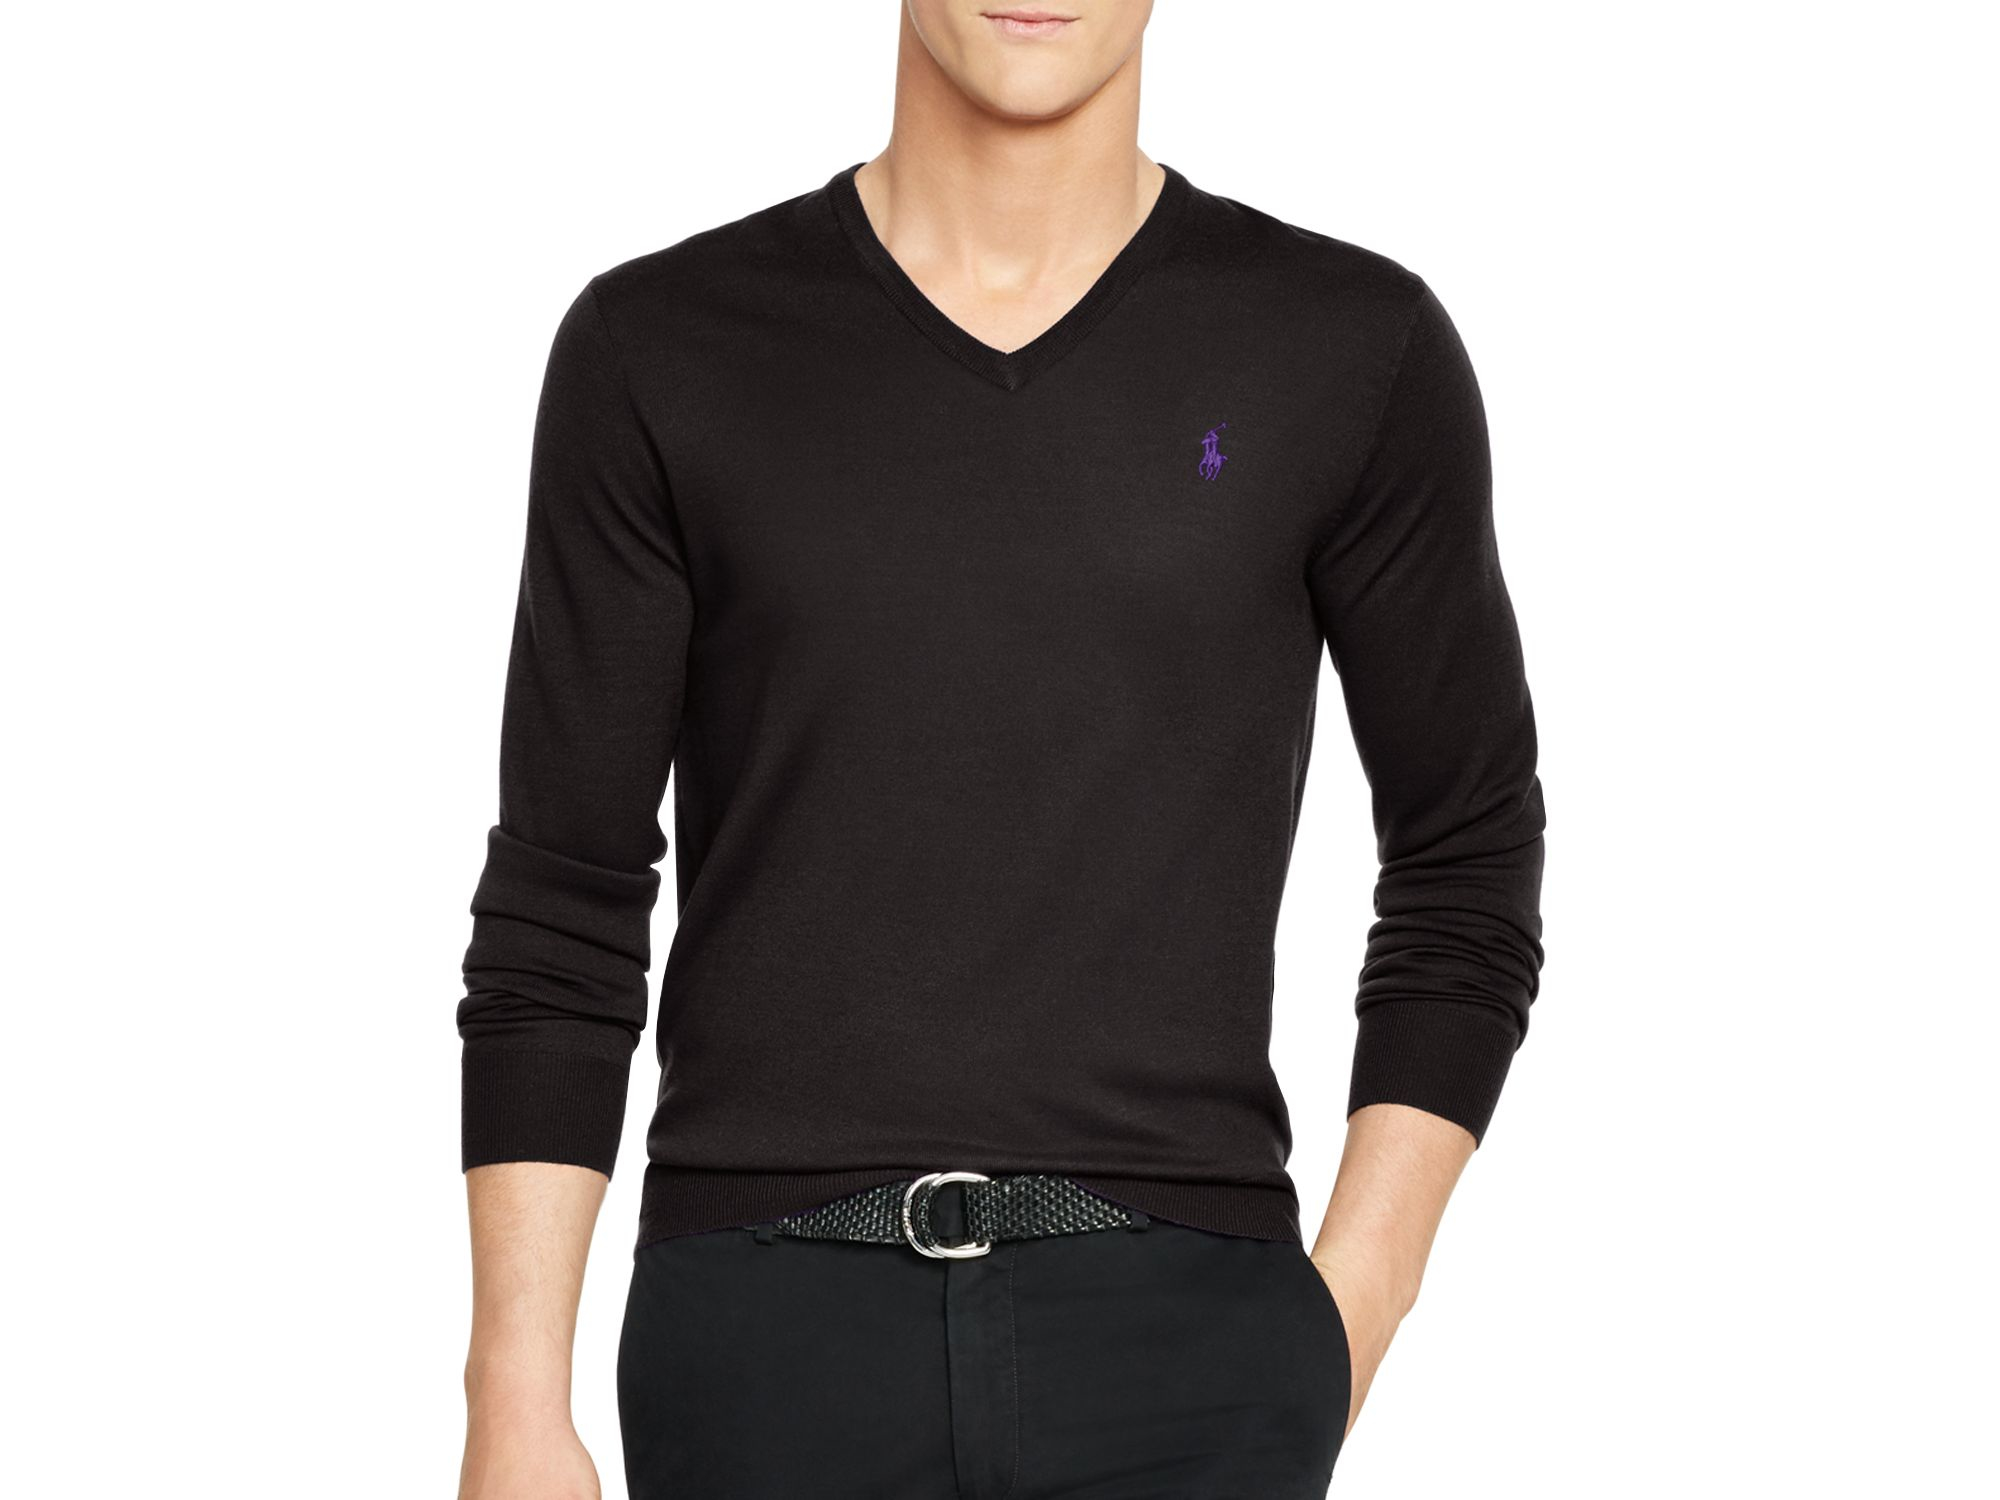 21a6d6a5f5948 Lyst - Polo Ralph Lauren Slim-fit Merino V-neck Sweater in Black for Men